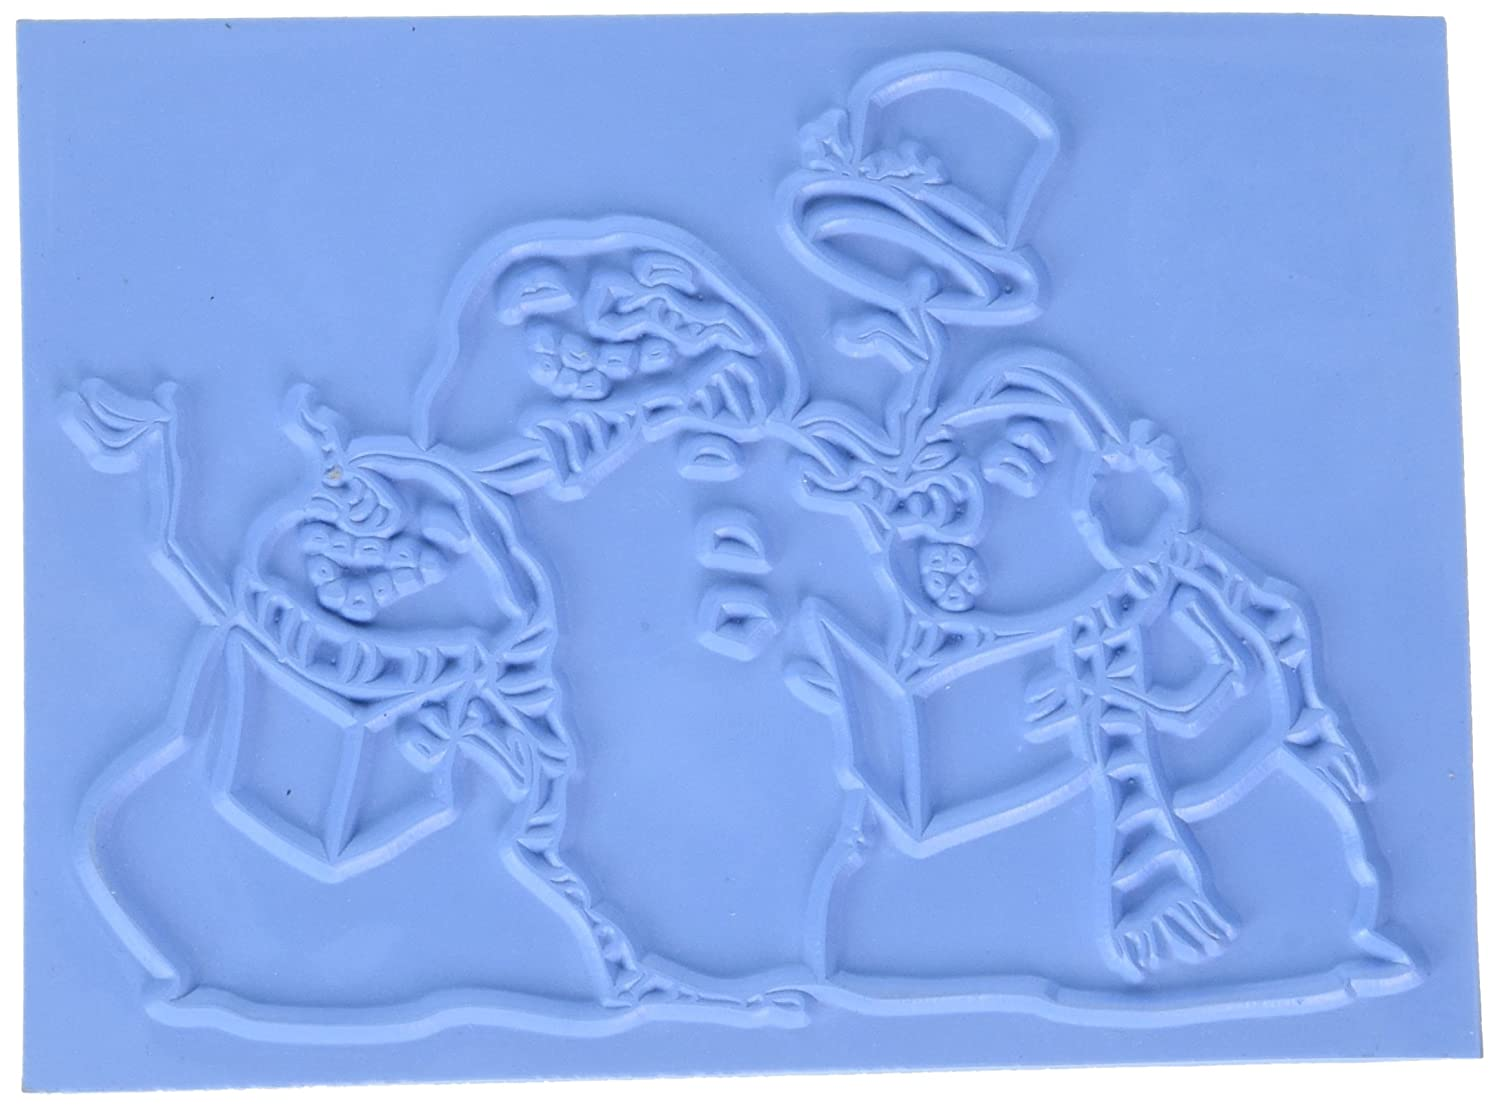 Caroling Trio Little Darlings Unmounted Rubber Stamp 4.542 by 3.25-Inch